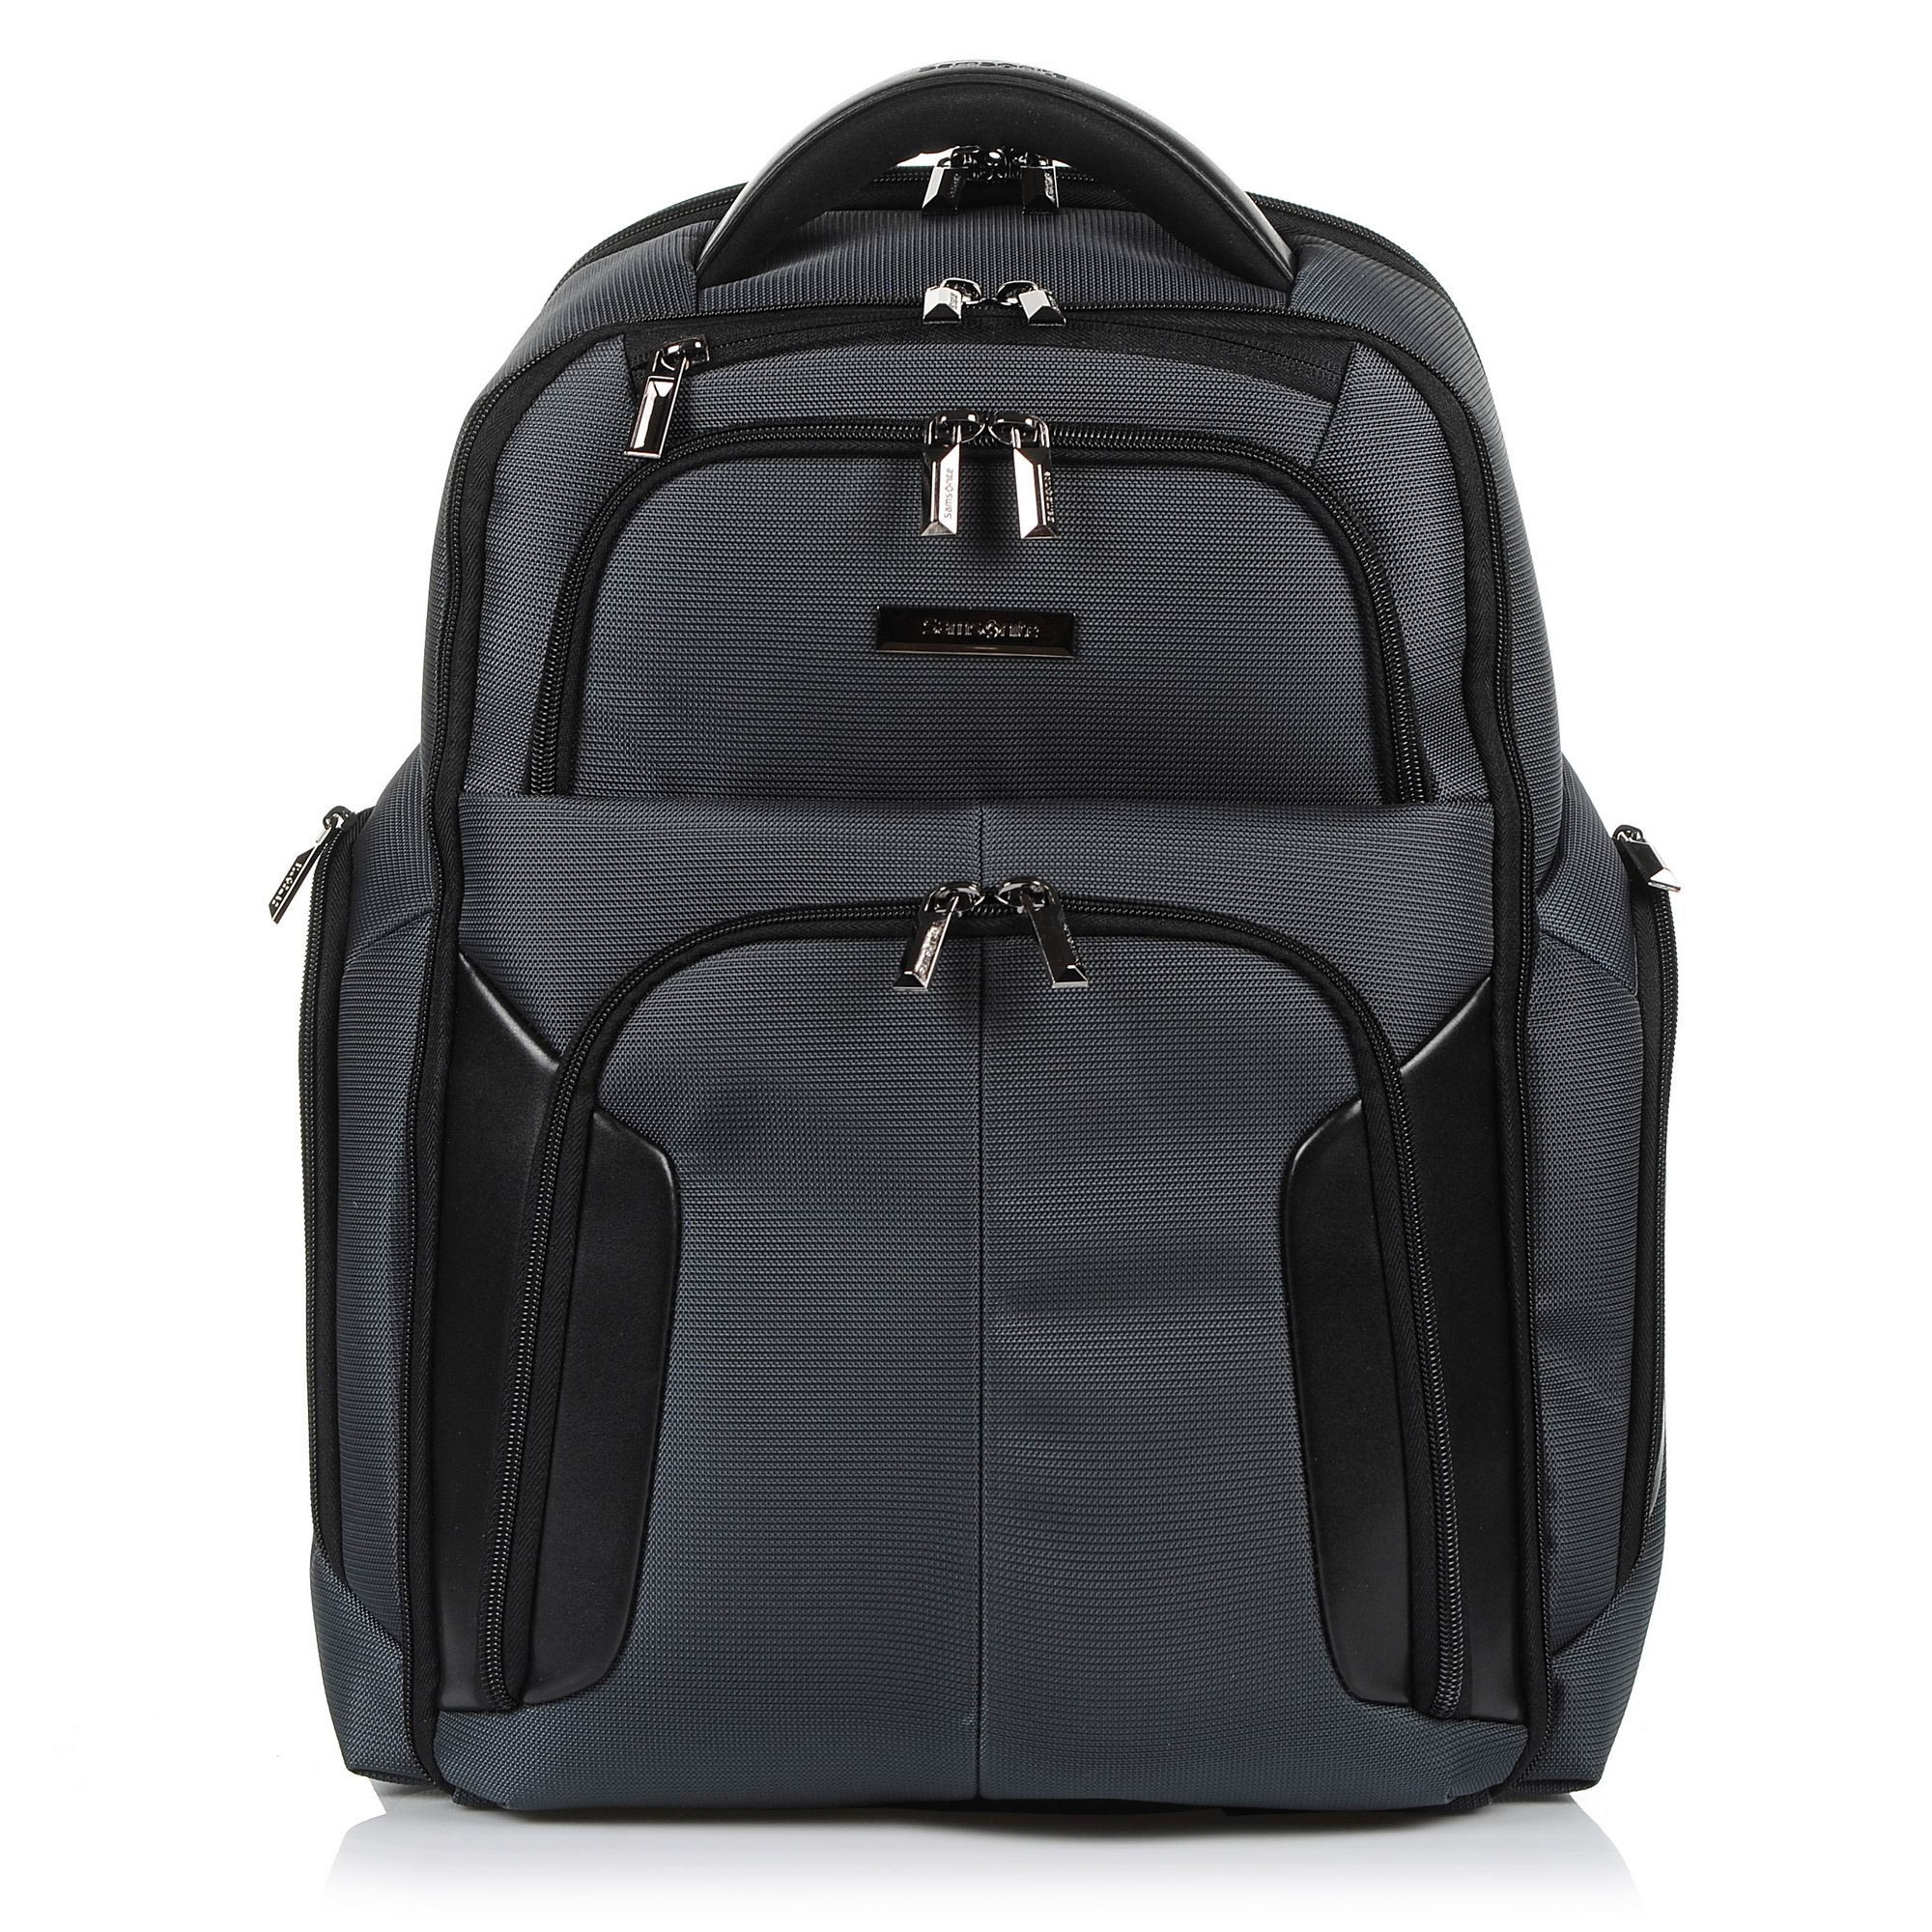 96fa5b9477 Brandbags Σακίδιο Πλάτης Samsonite XBR Laptop Backpack 3V 15.6